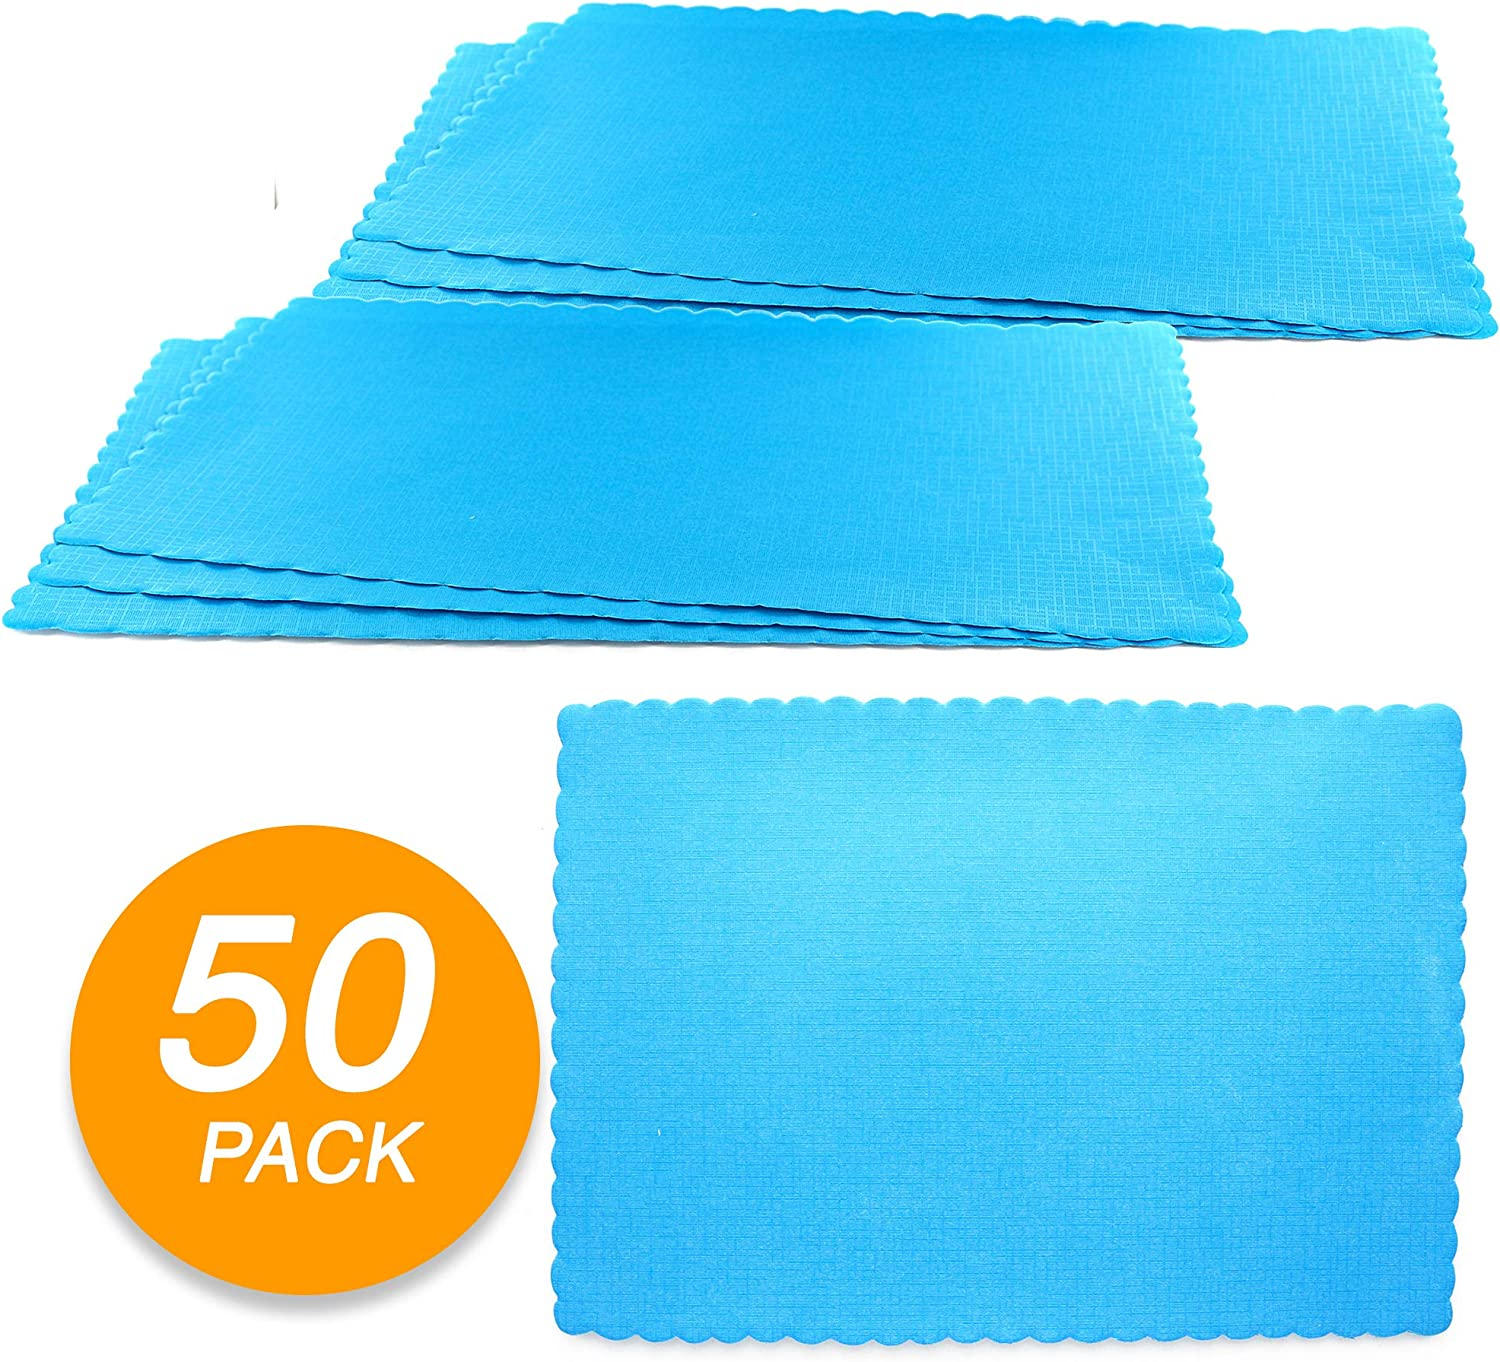 SparkSettings Disposable Paper Placemat for Dining Table Easy to Clean Made of Paper Great for Various Party, Events, Festivals or Occasions - Caribbean Blue (50/Pack)